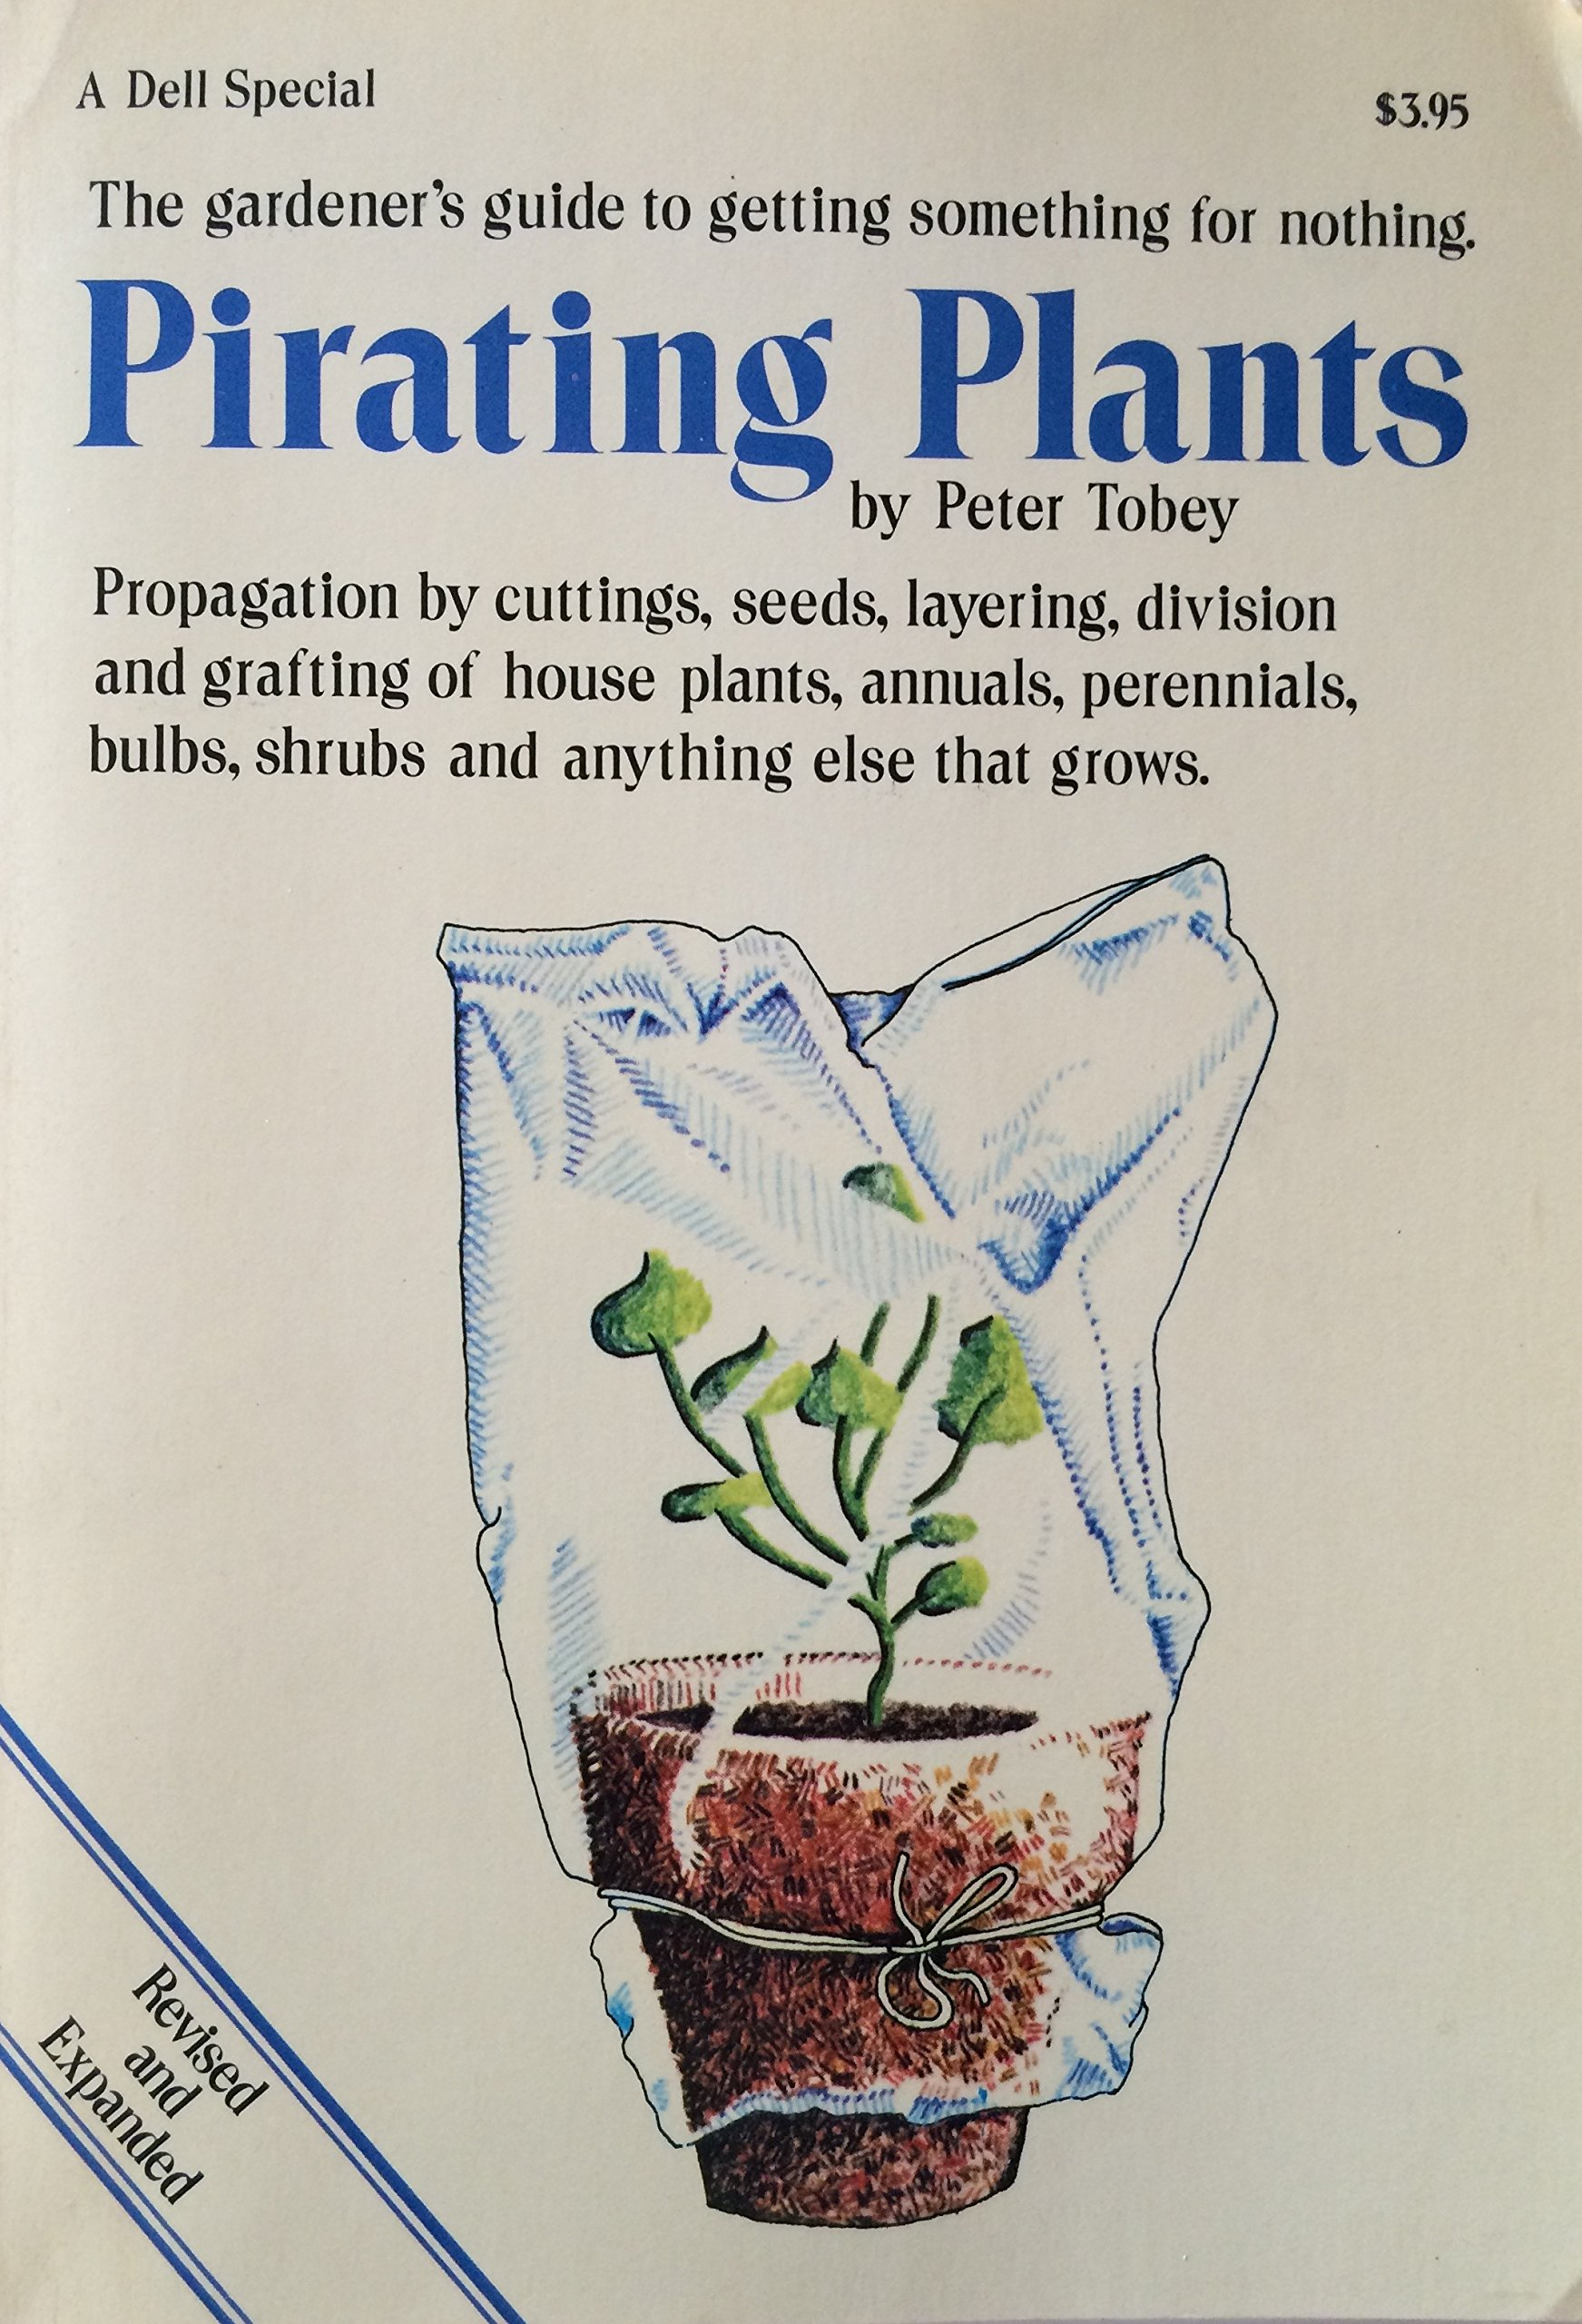 Pirating Plants The Gardener's Guide to Getting Something for Nothing, Tobey Peter